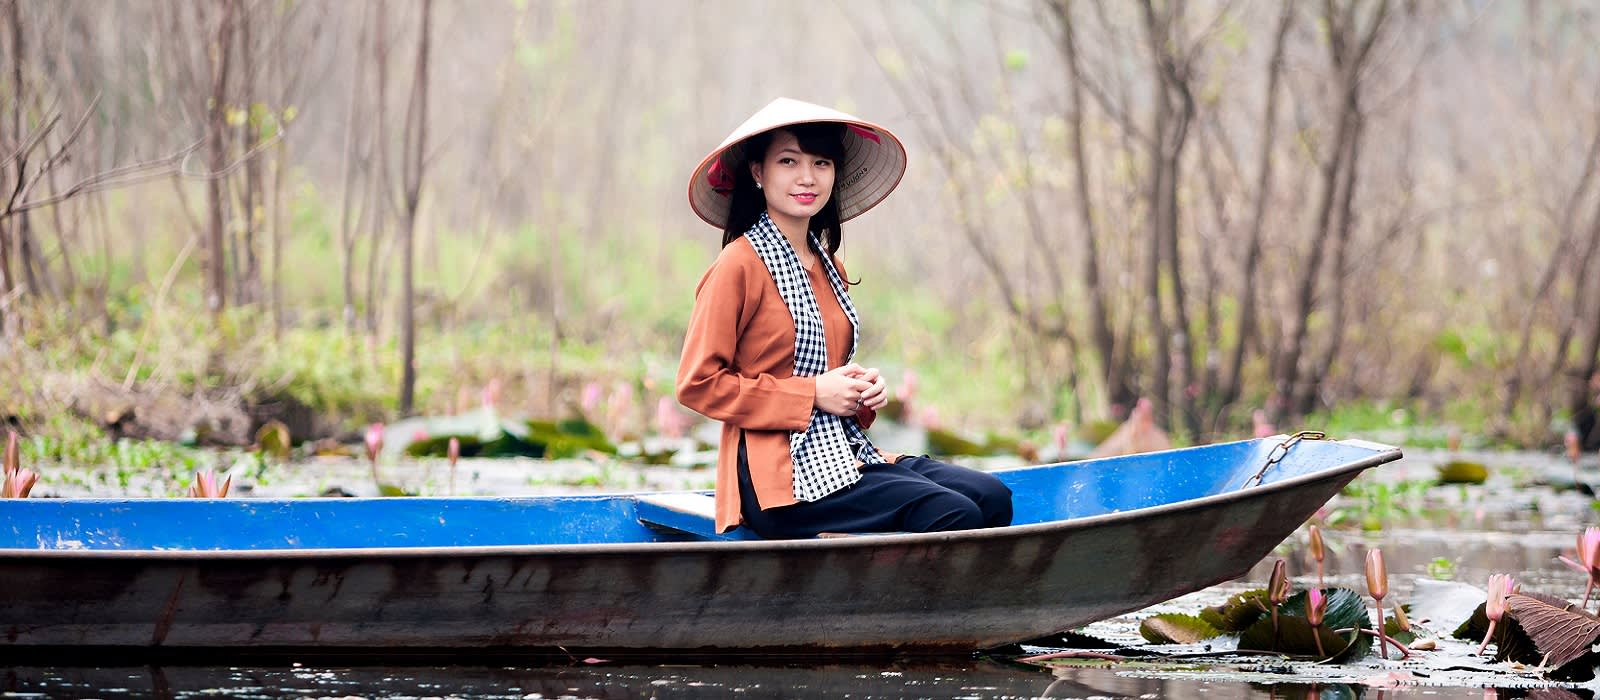 Enchanting Travels Asia Tours The girl wear traditional costume in the season of water lily at the flooded forest,